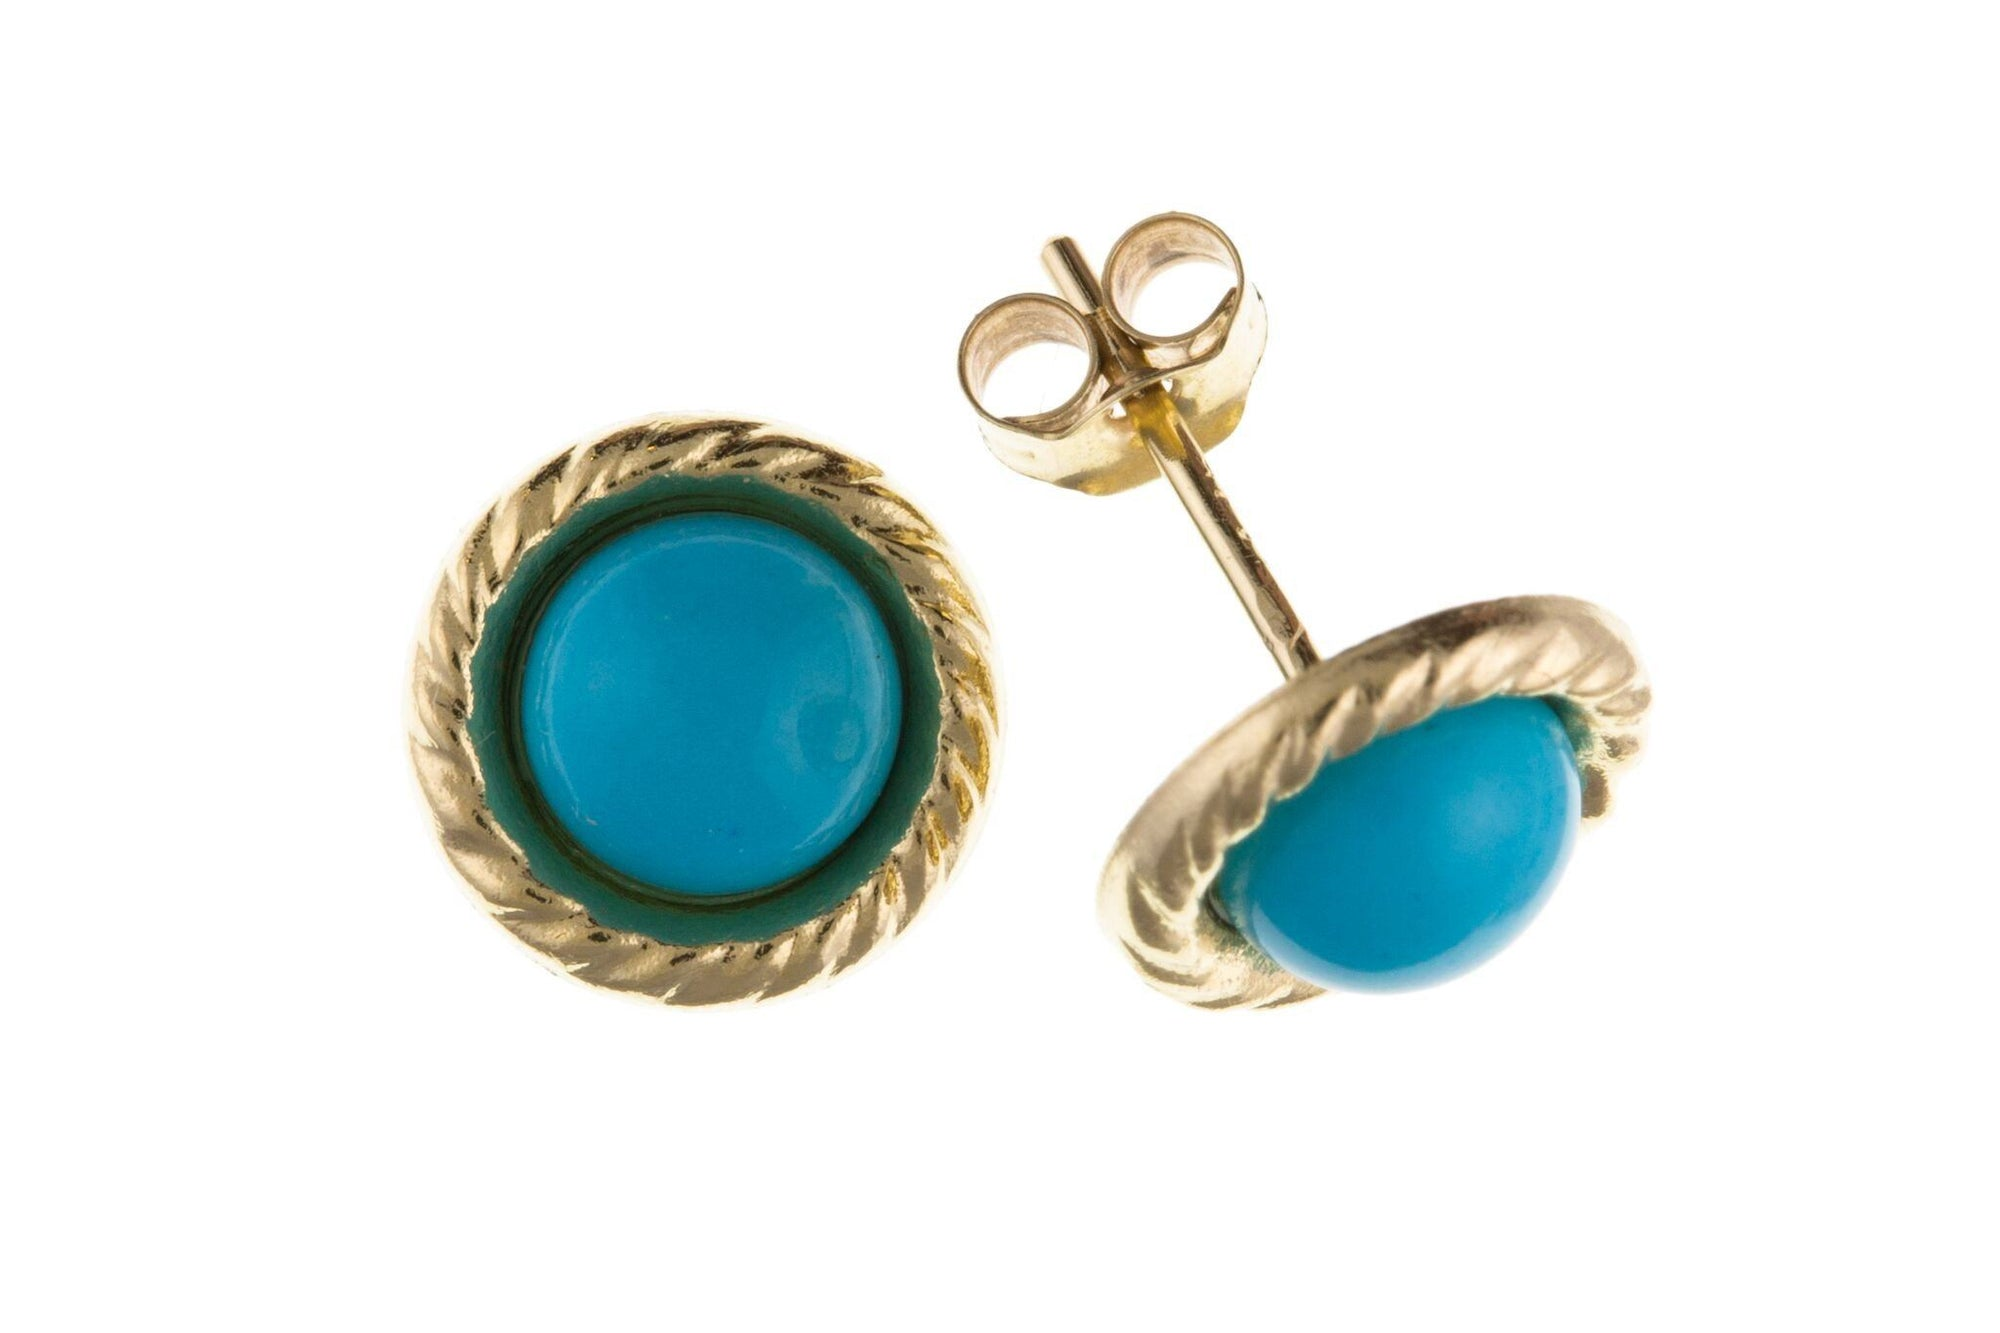 Gold Turquoise Earrings Jewellery JoolsJewellery.co.uk